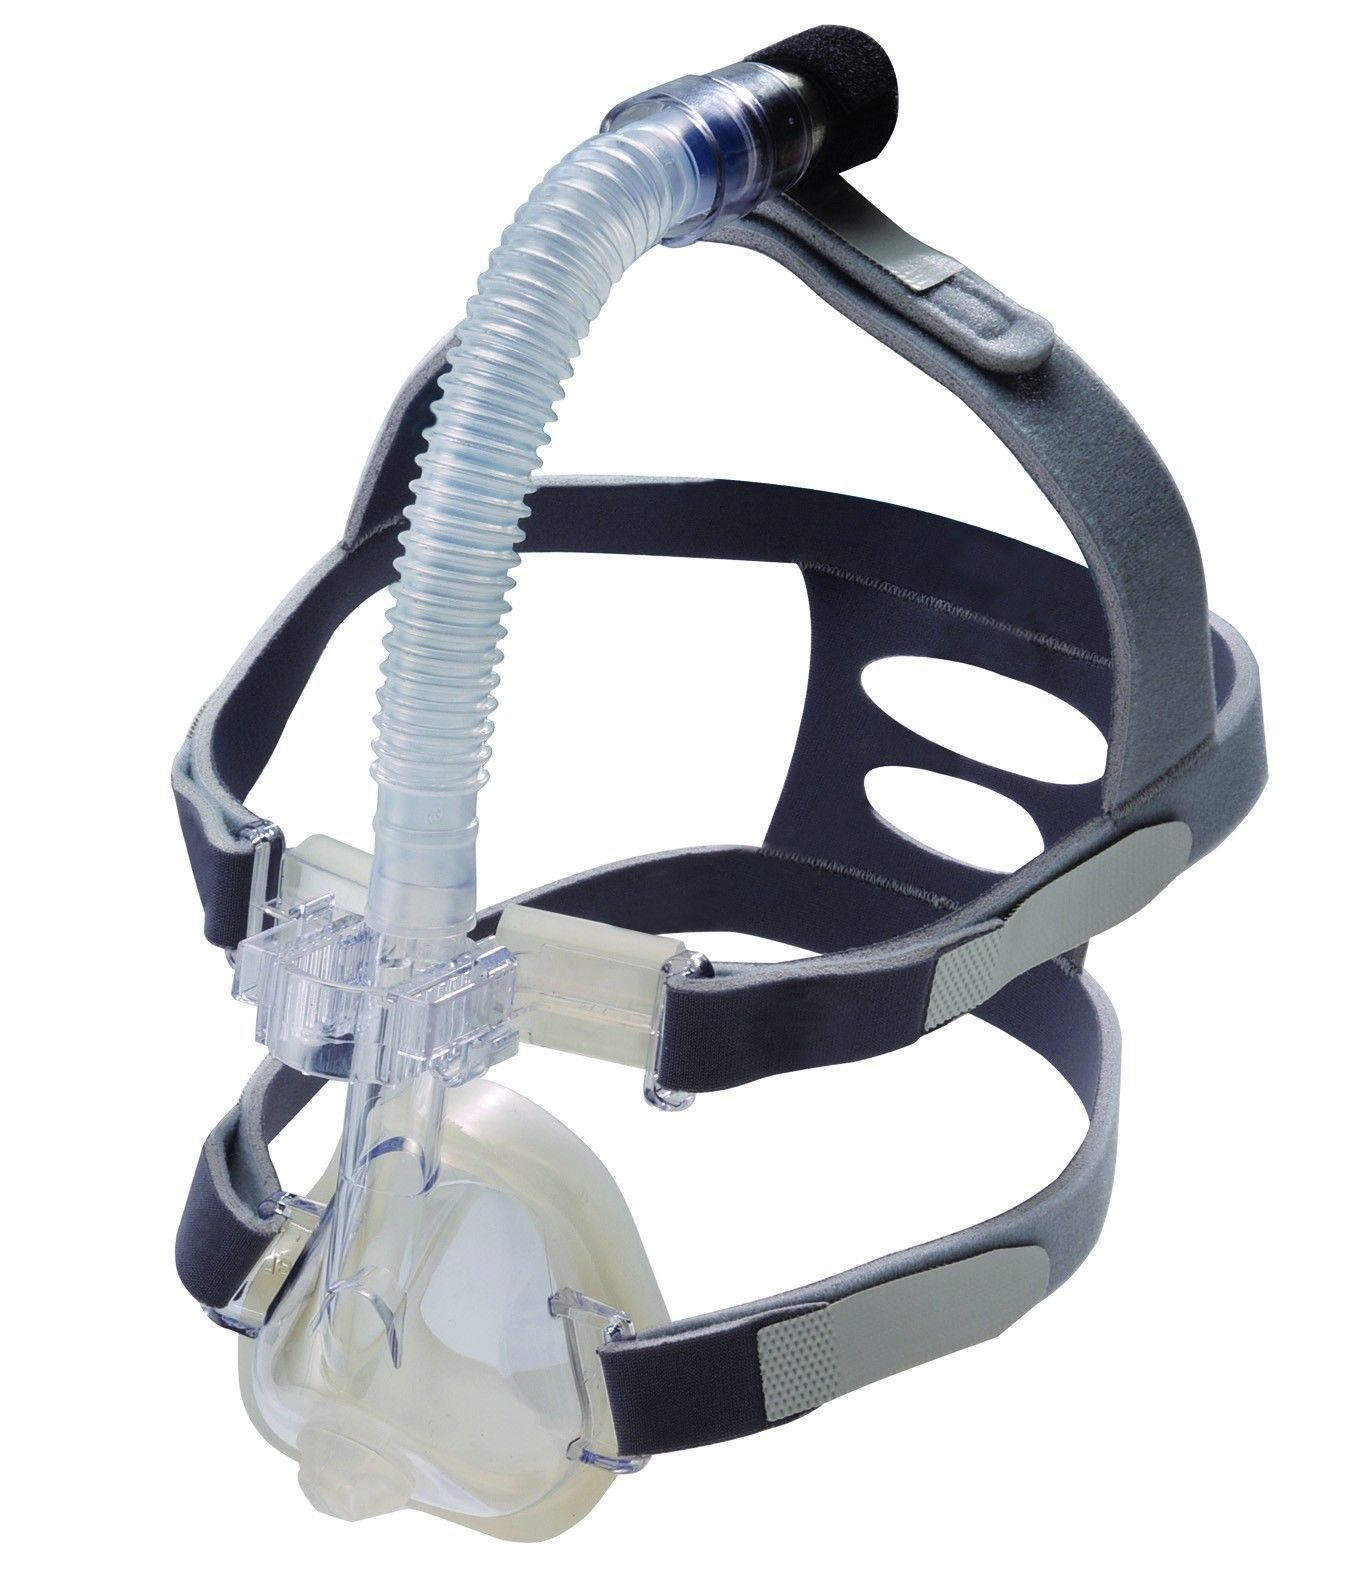 2 Nasal Mask for CPAP and Bi-level Ventilation